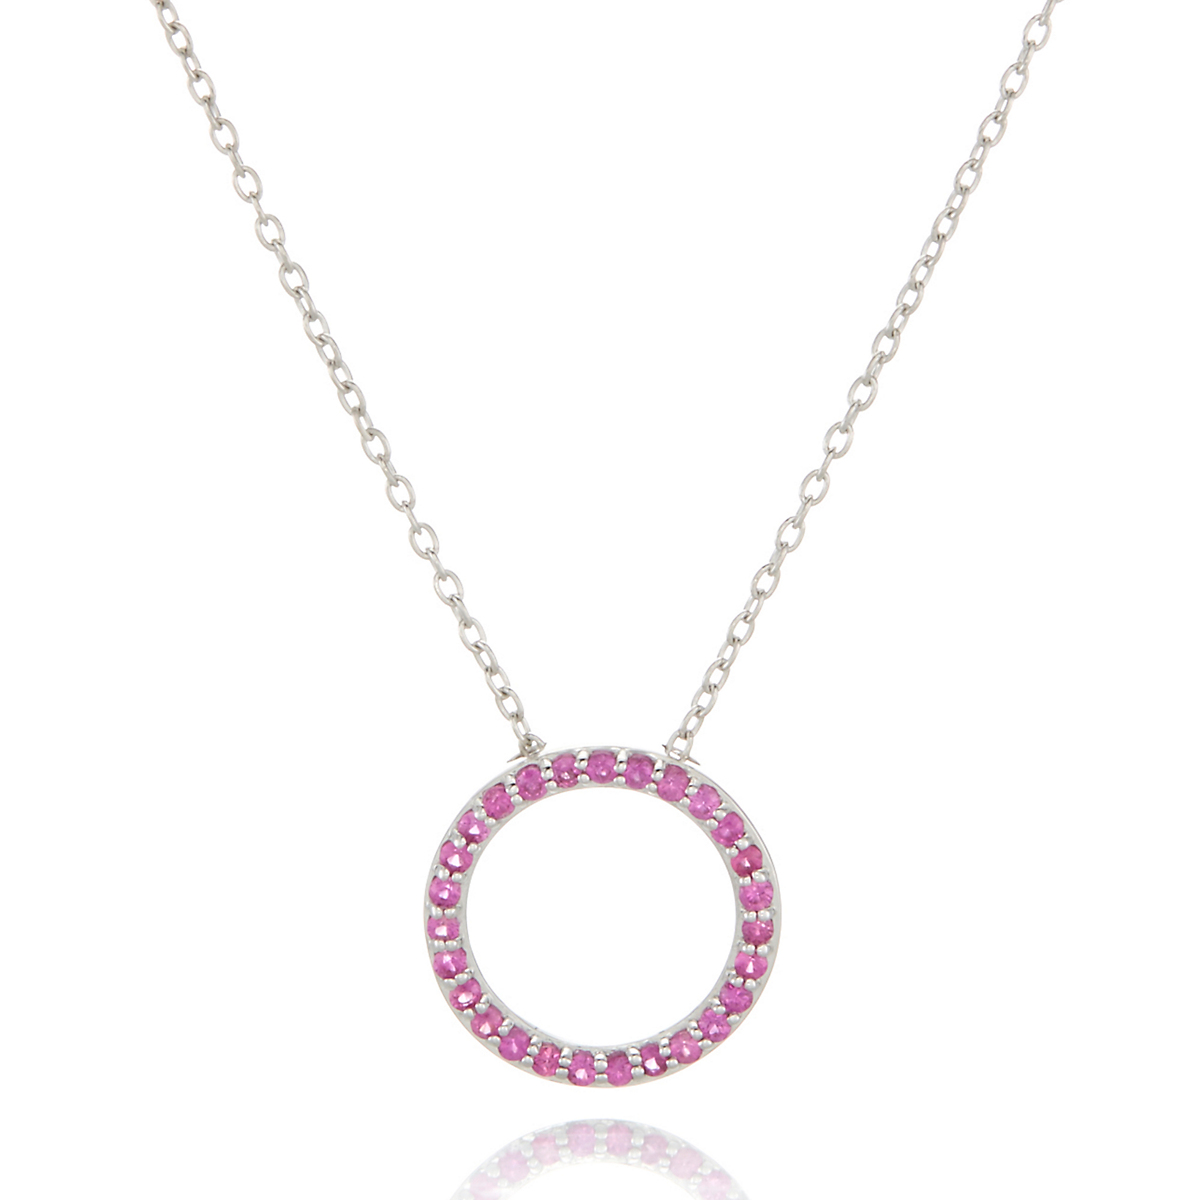 Gump's Pink Sapphire Open Circle Silver Pendant Necklace